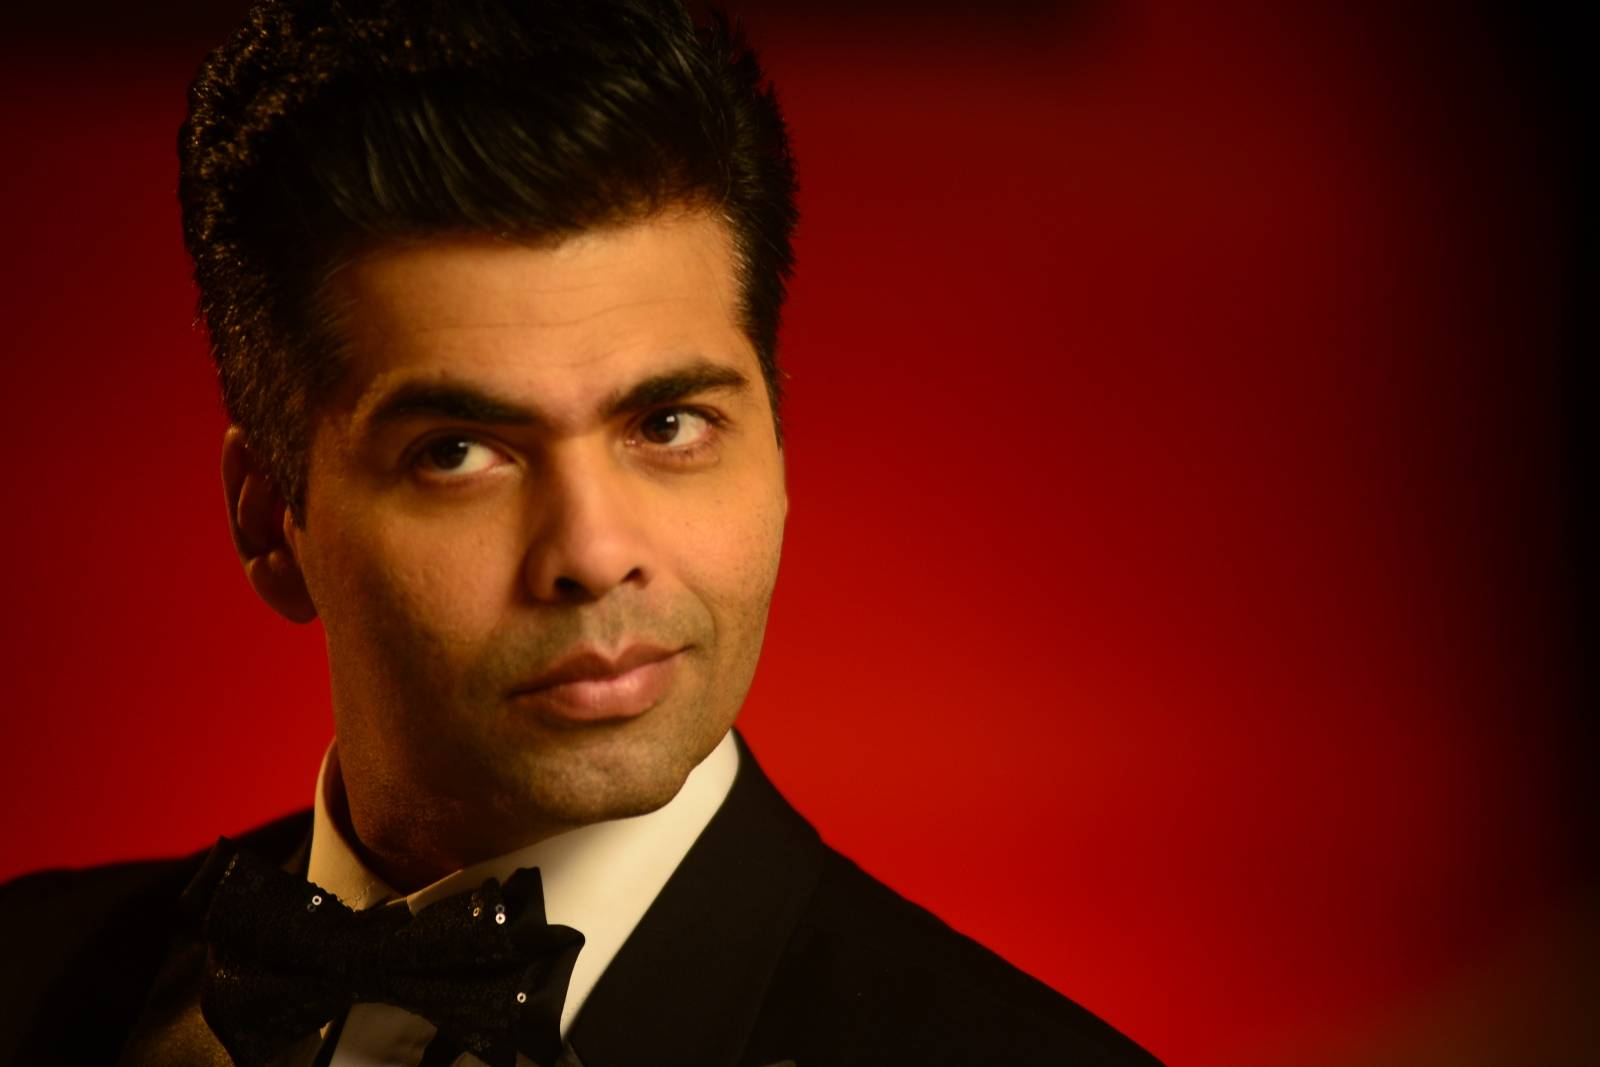 Karan Johar's Statements about his upcoming biography 'An Unsuitable Boy'